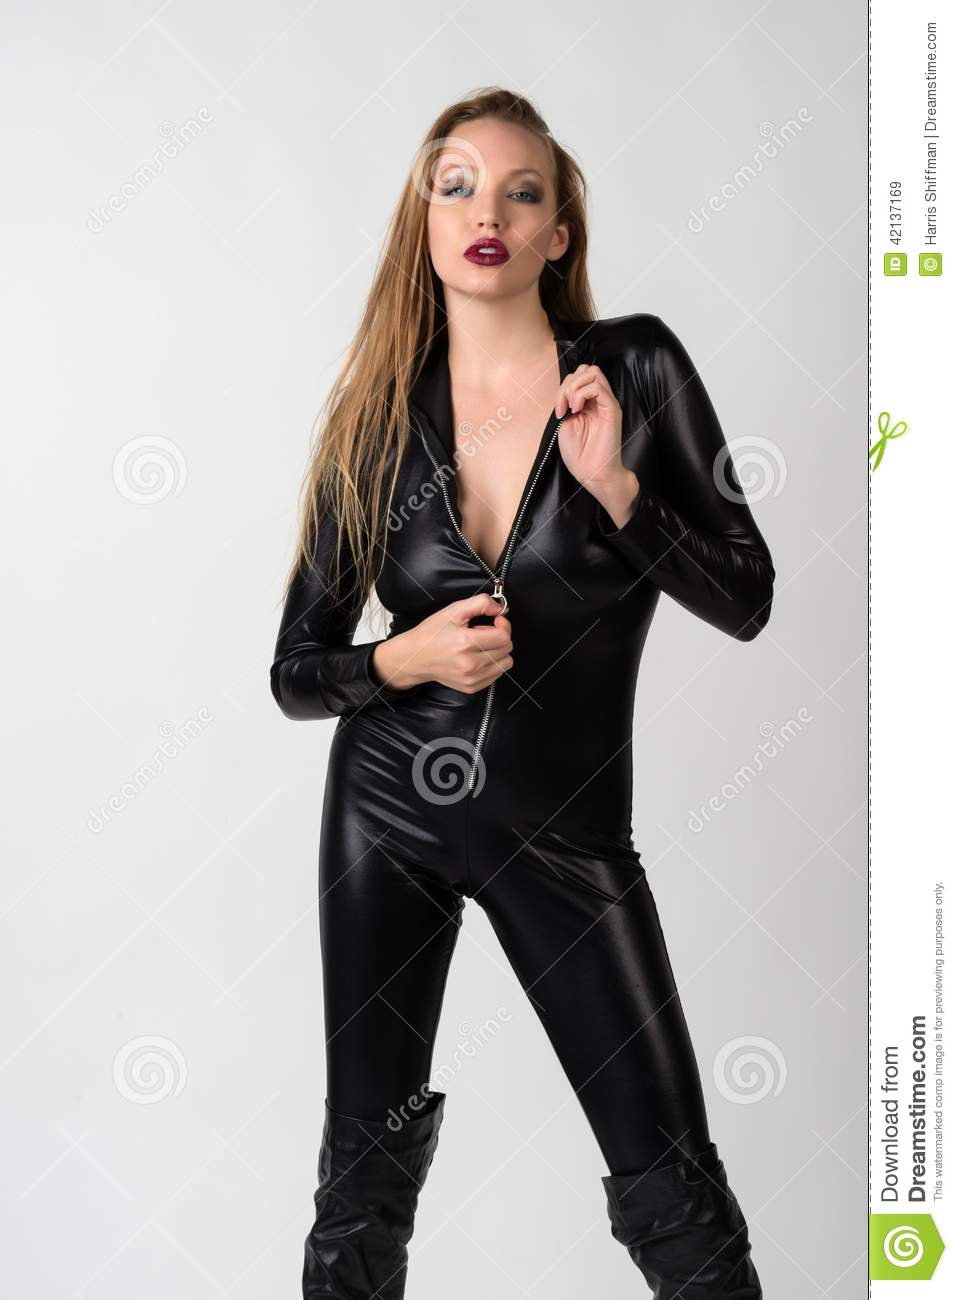 Understand Blonde latex catsuit think, that